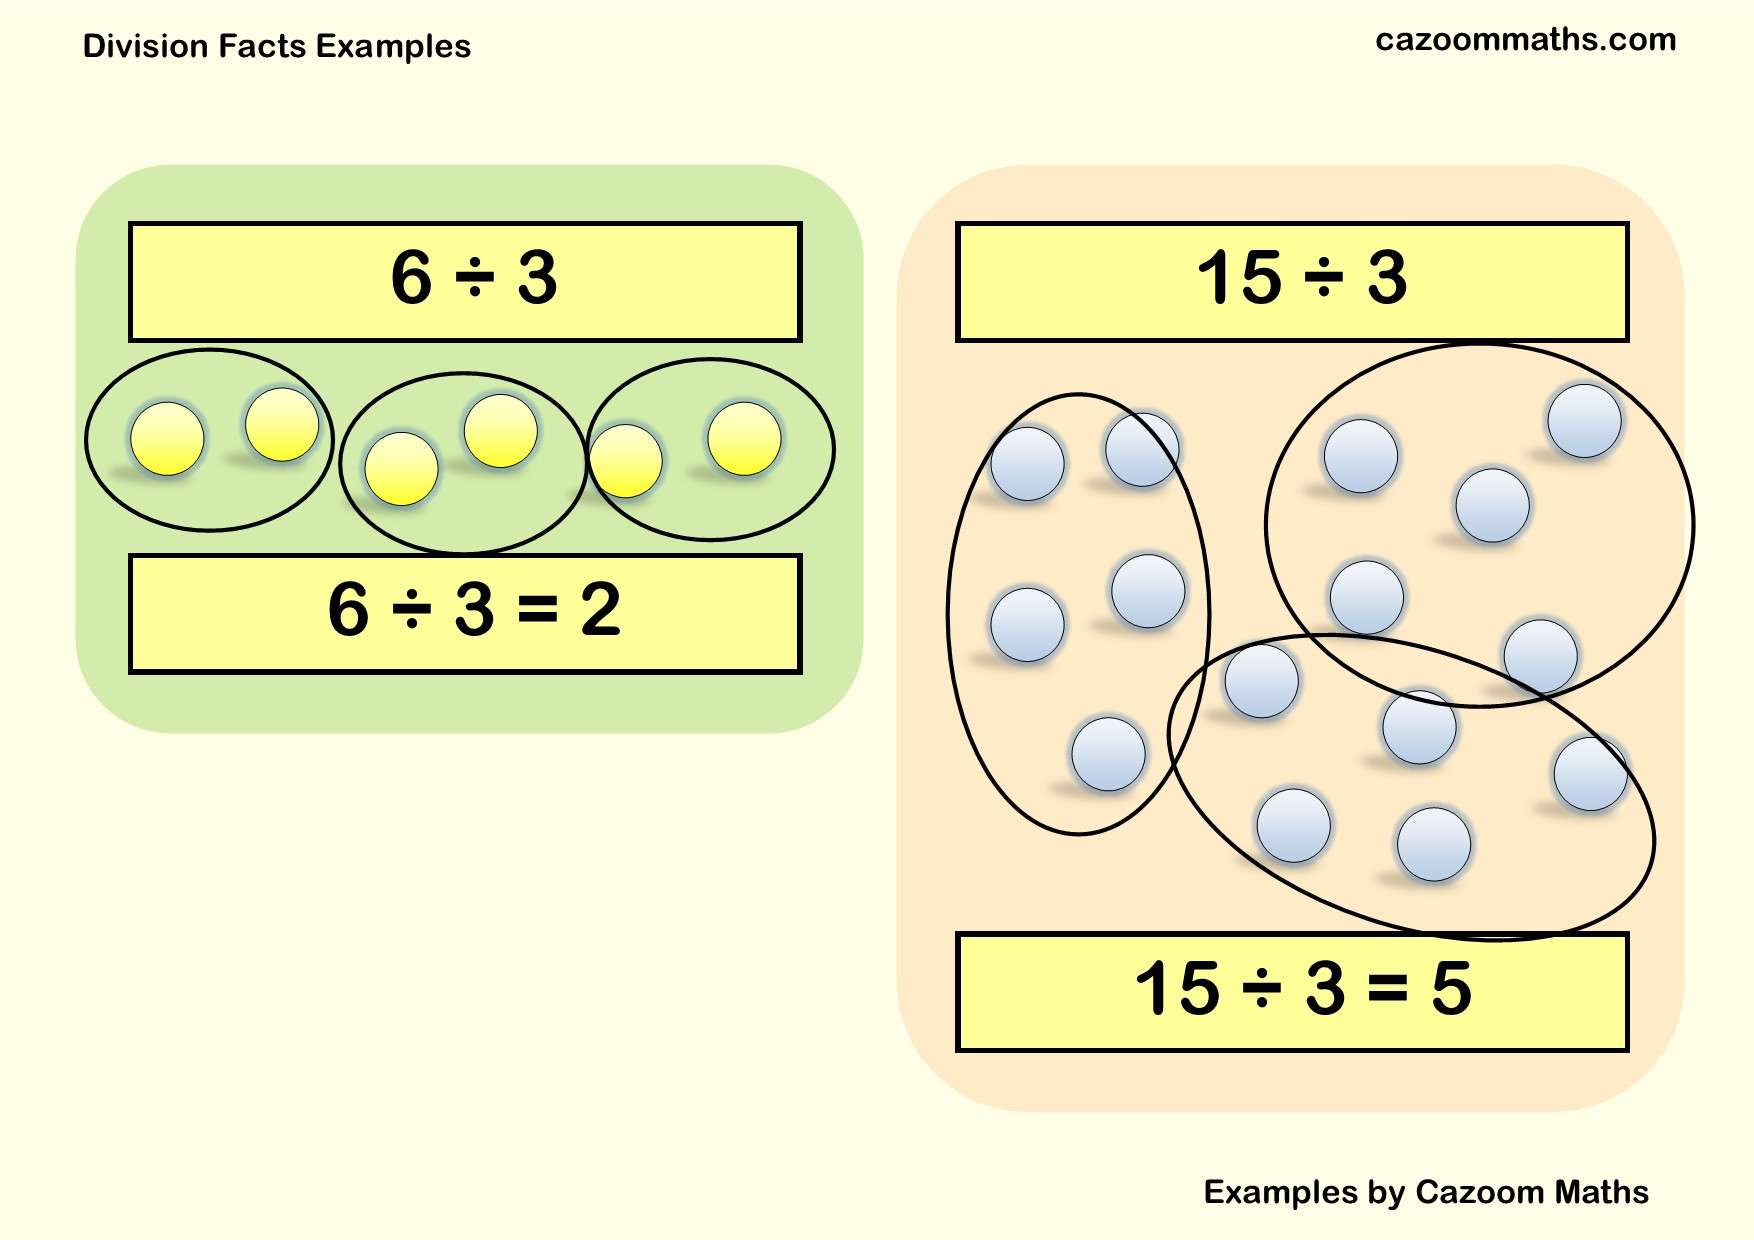 maths resources and examples